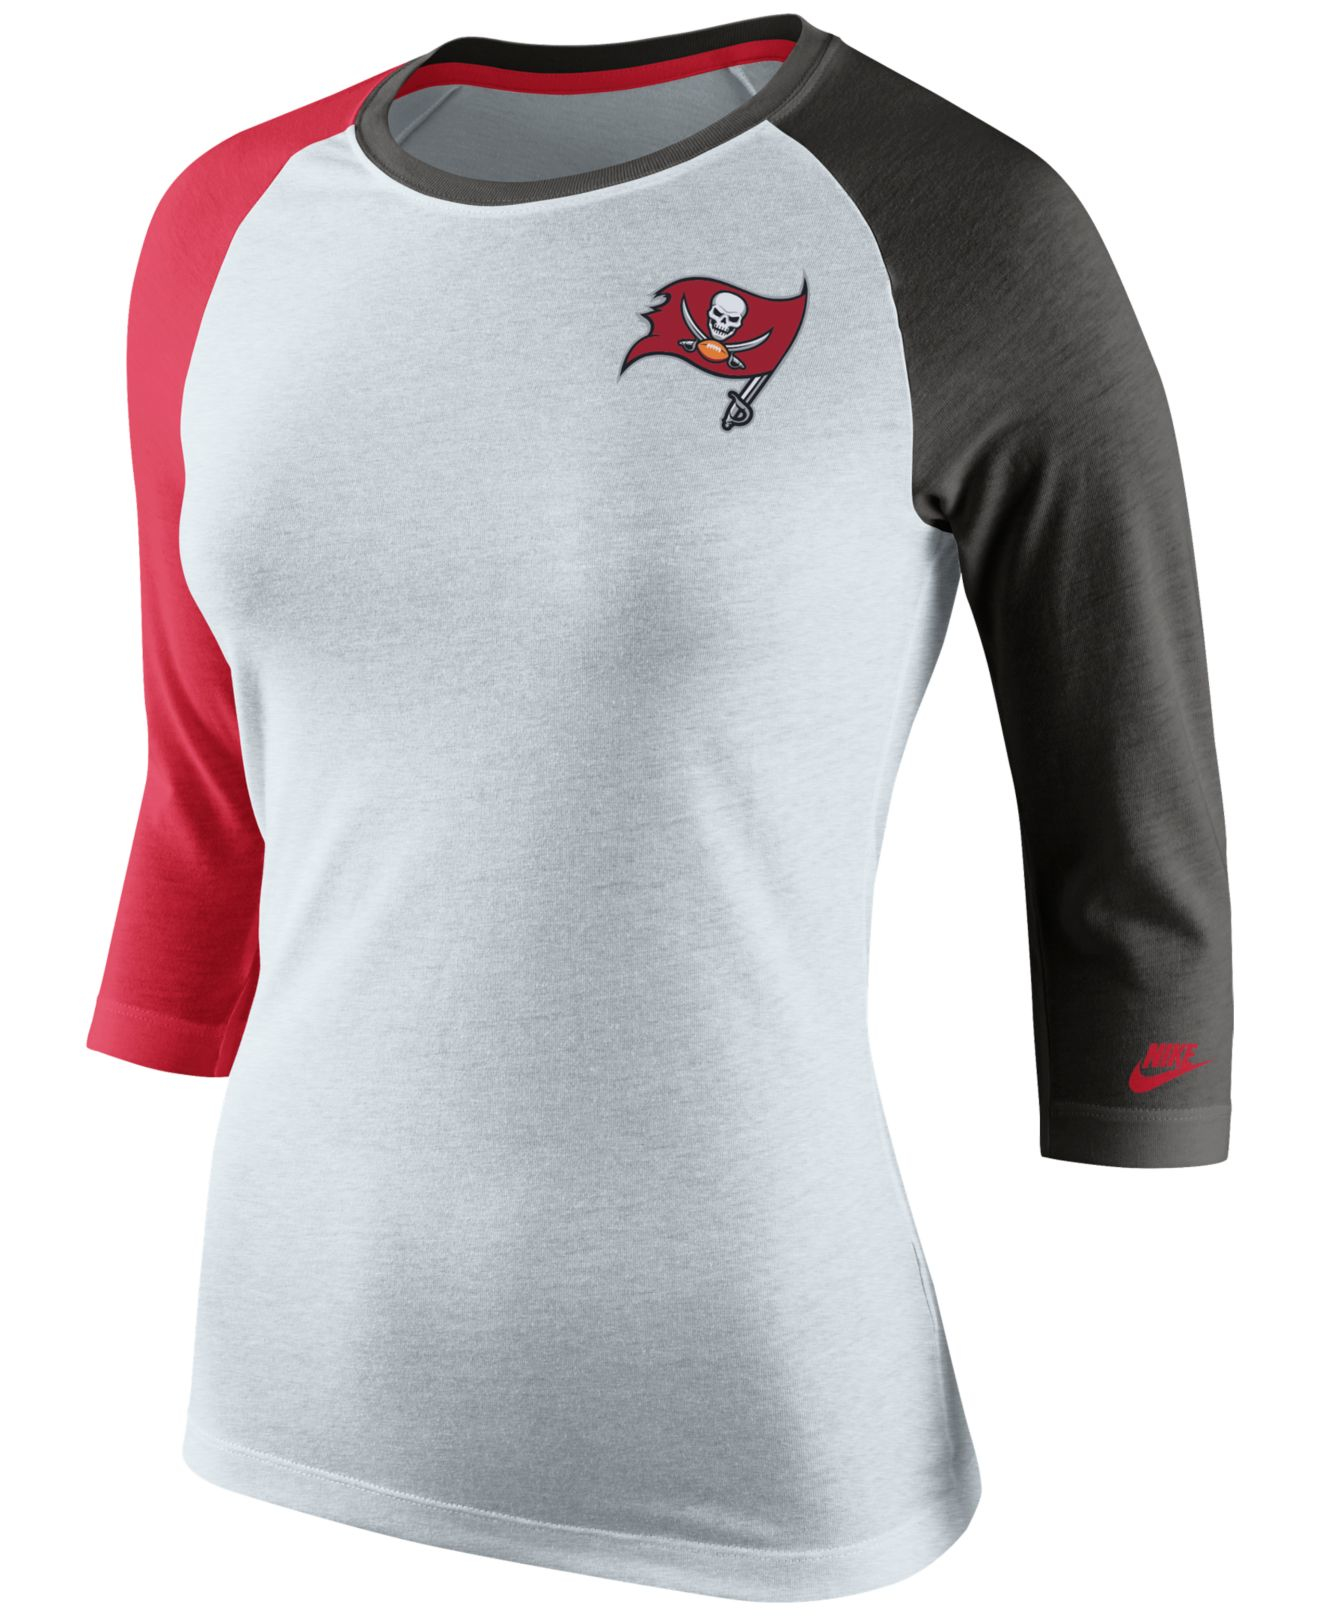 40966d57 Lyst - Nike Women's Tampa Bay Buccaneers Strong Side T-shirt in Black